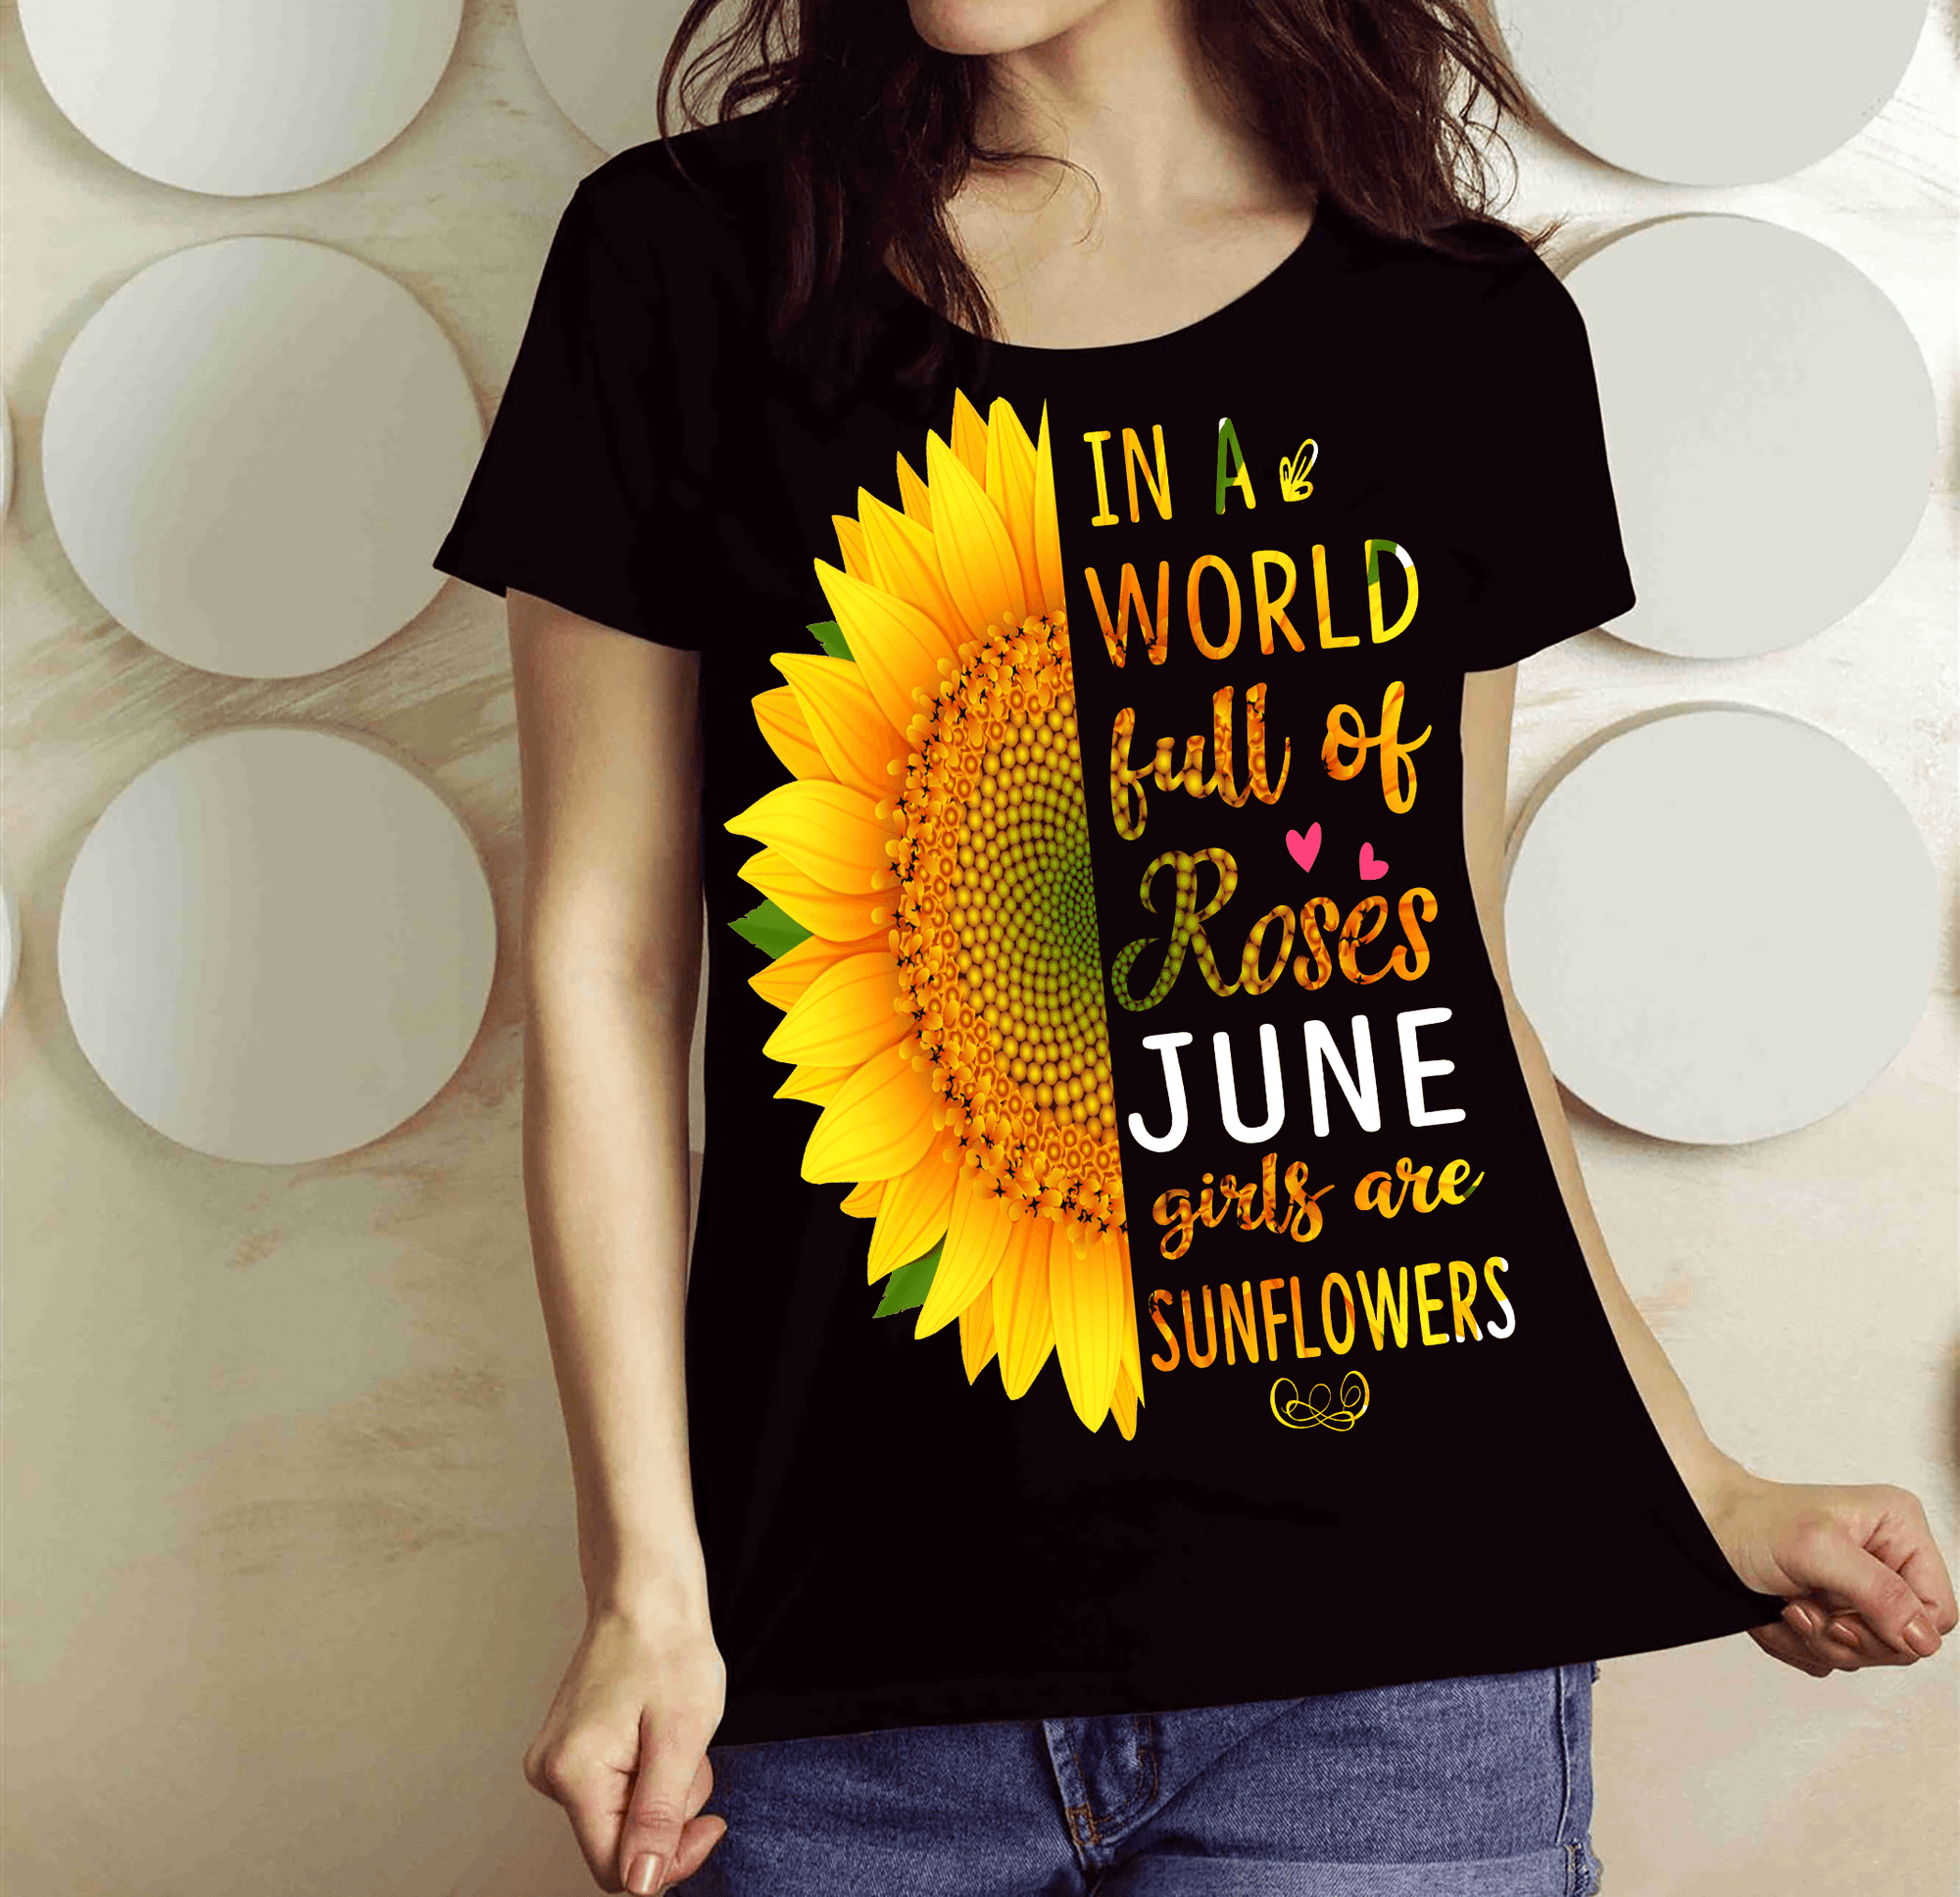 """In A World Full Of Roses June Girls are Sunflowers"" FLAT SHIPPING (Special Discount) - LA Shirt Company"